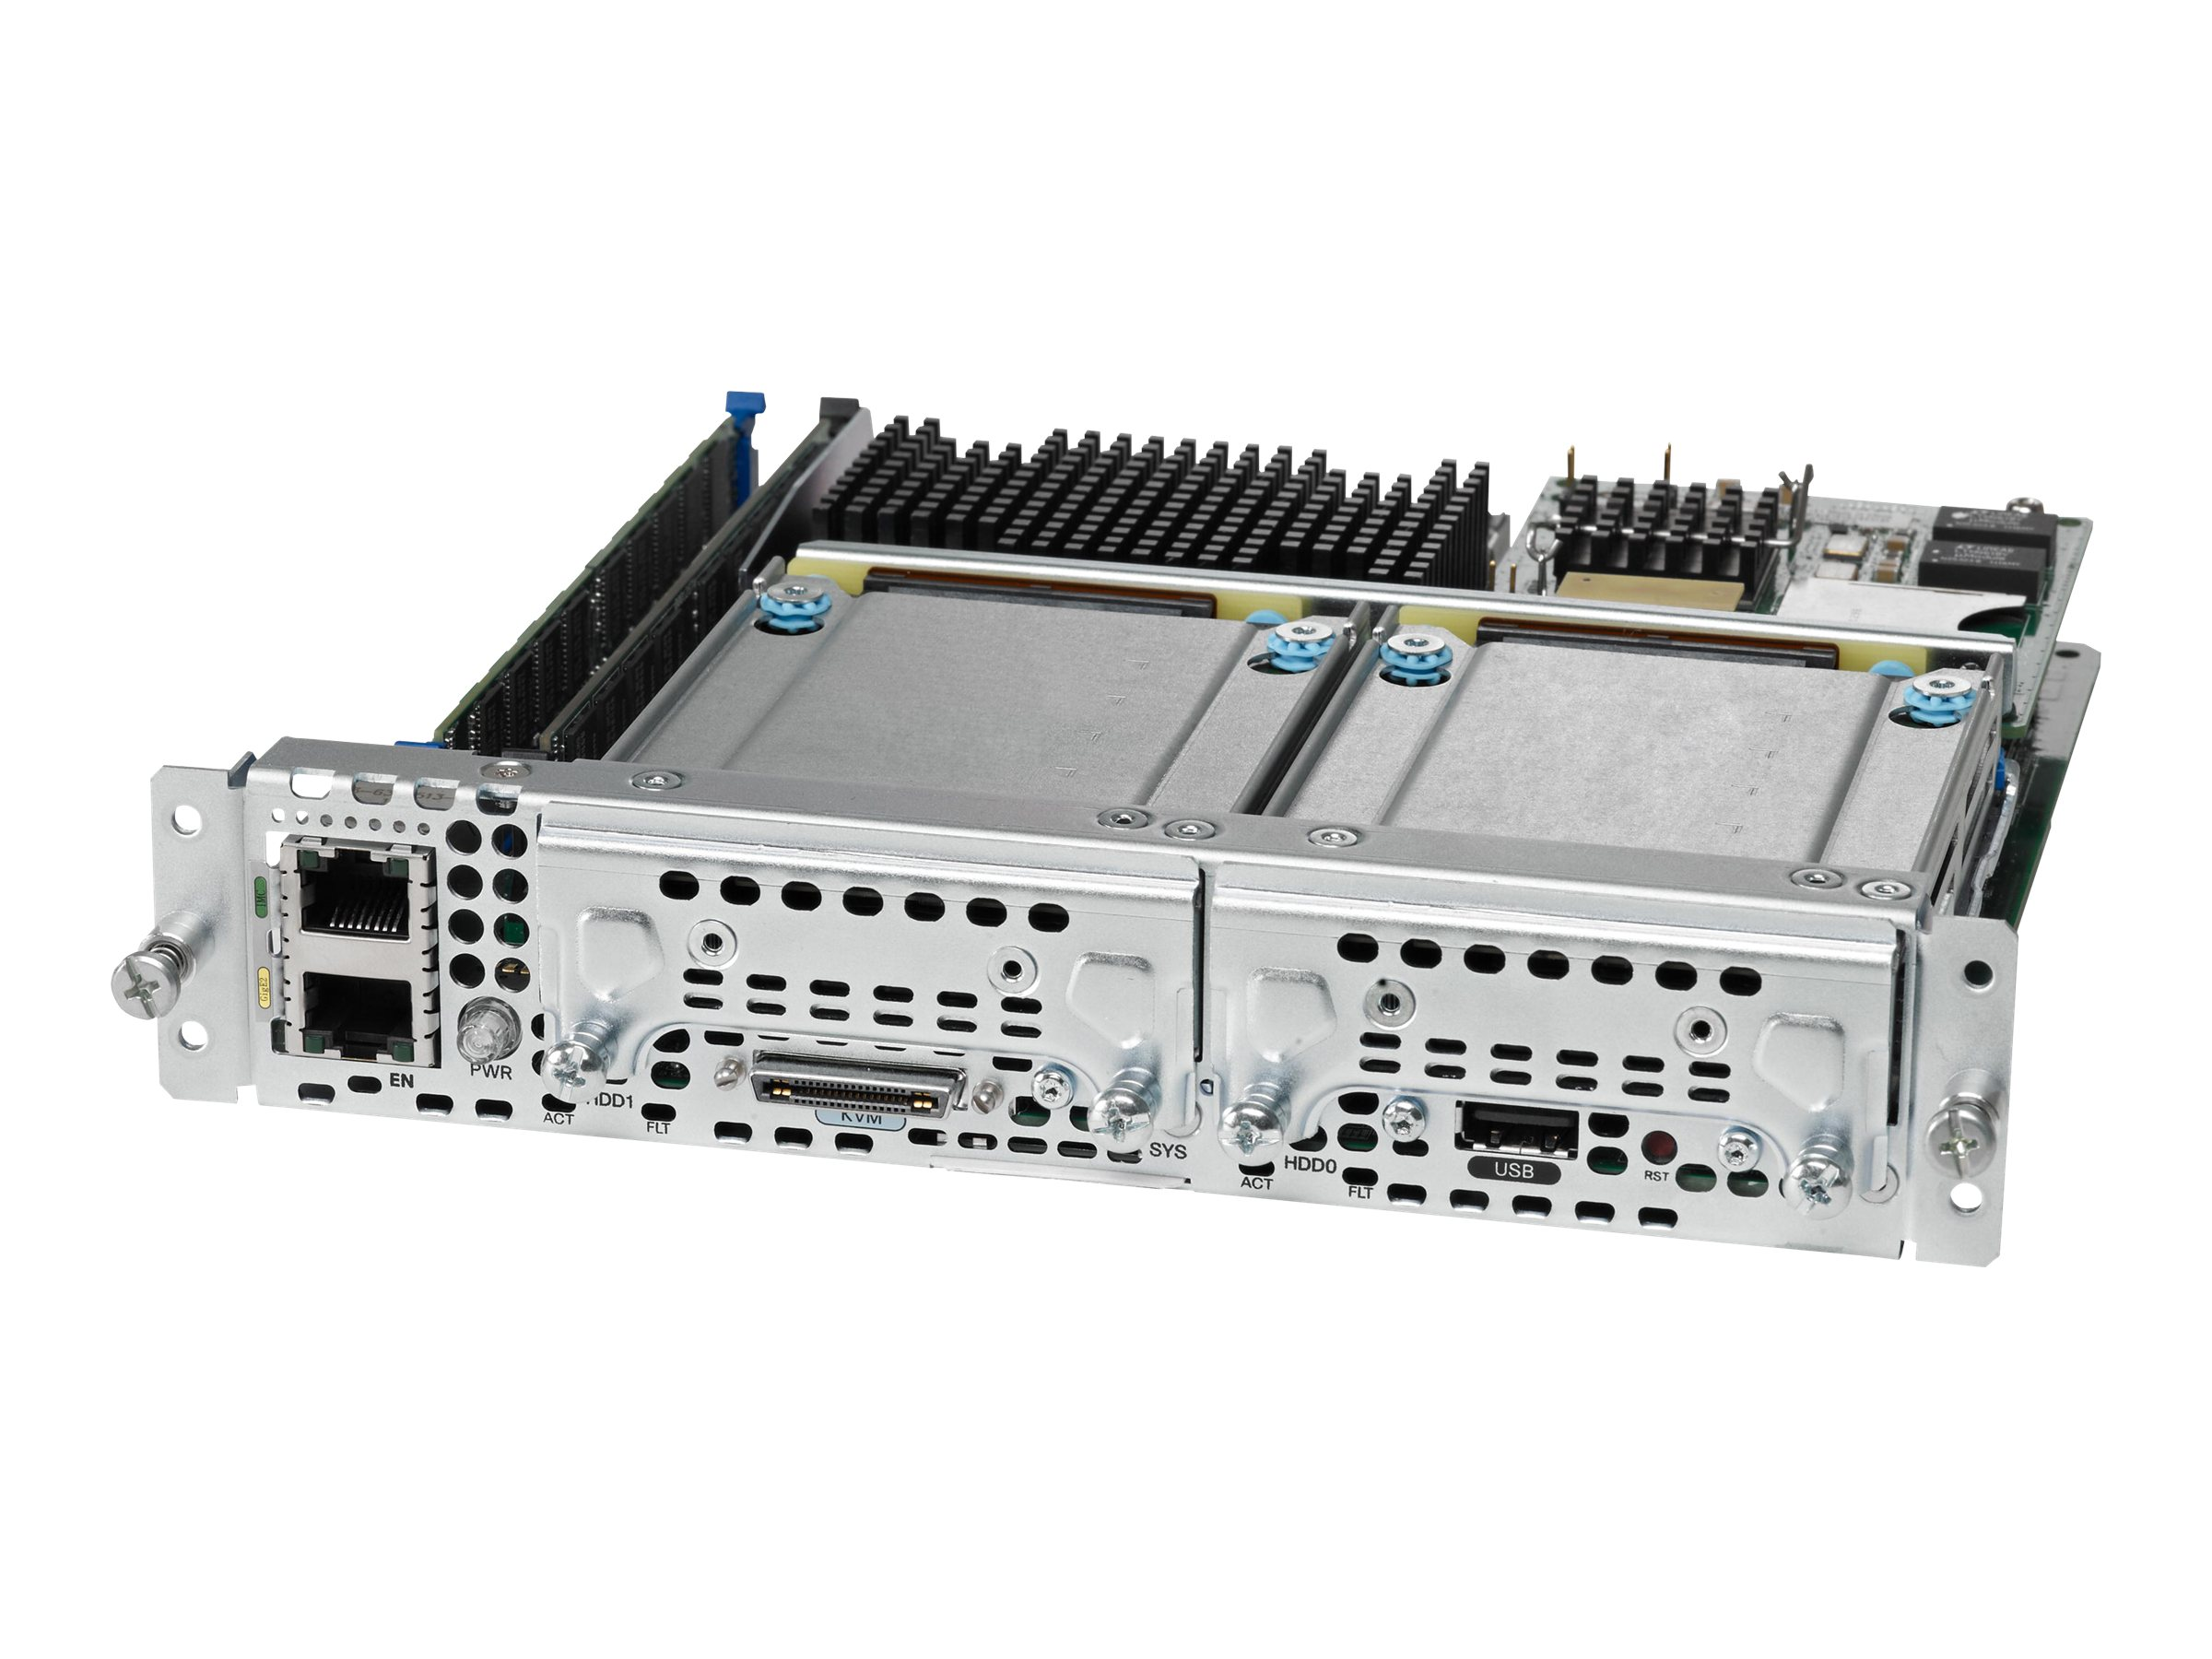 Cisco UCS E-Series Single-Wide Server Blade Xeon QC E3 1100 v1 8GB 2xSD Cards, UCS-E140S-M1/K9=, 17423000, Servers - Blade